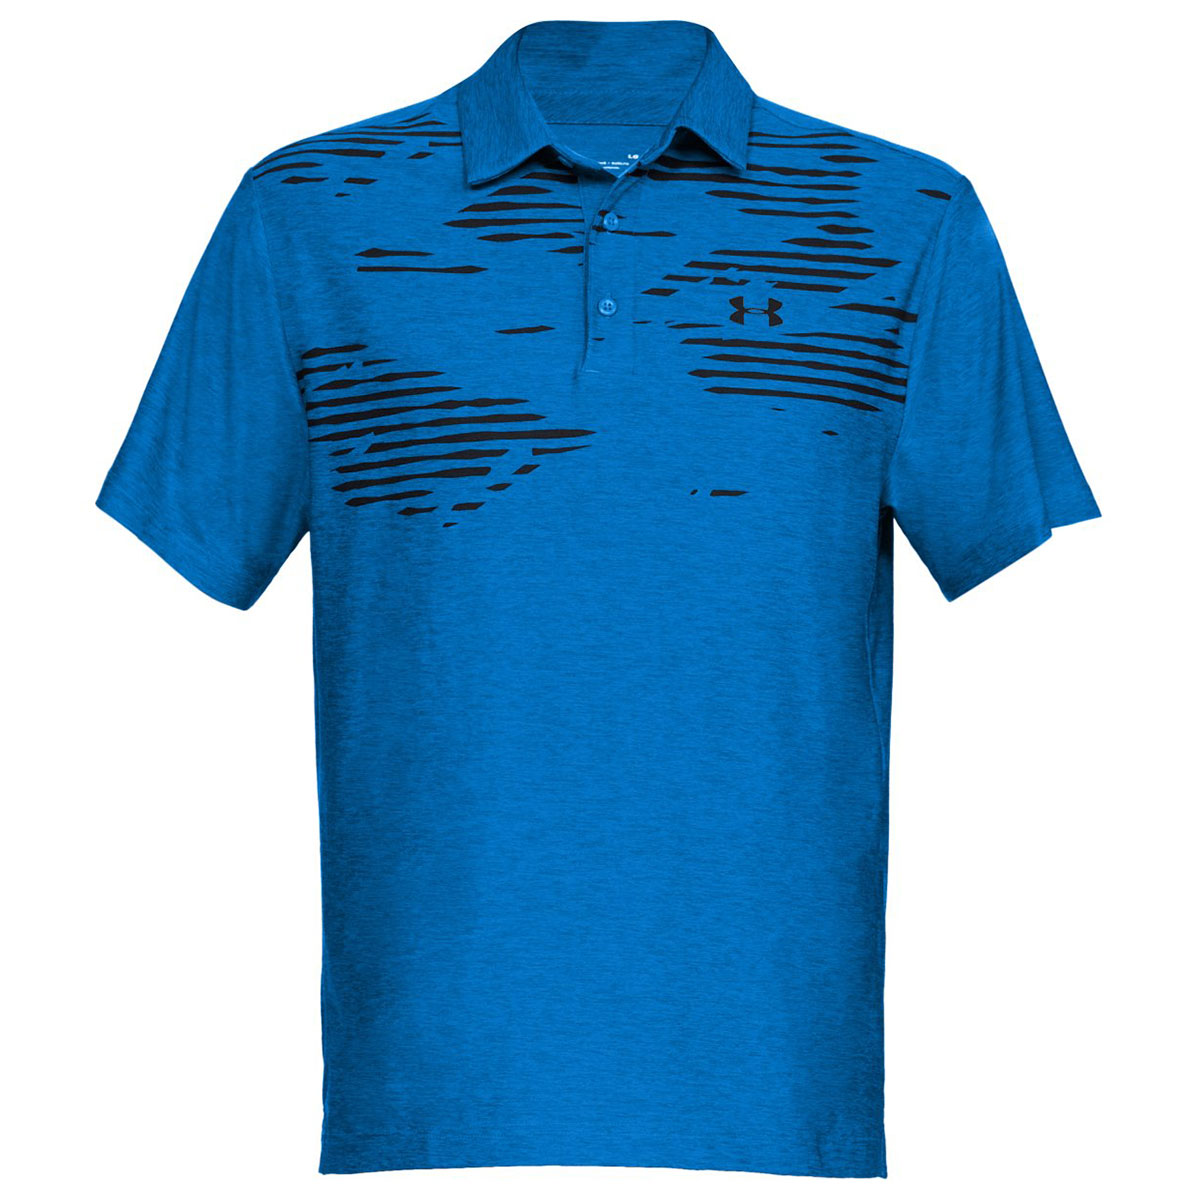 Under-Armour-Mens-UA-Playoff-Performance-Golf-Polo-Shirt-33-OFF-RRP thumbnail 35